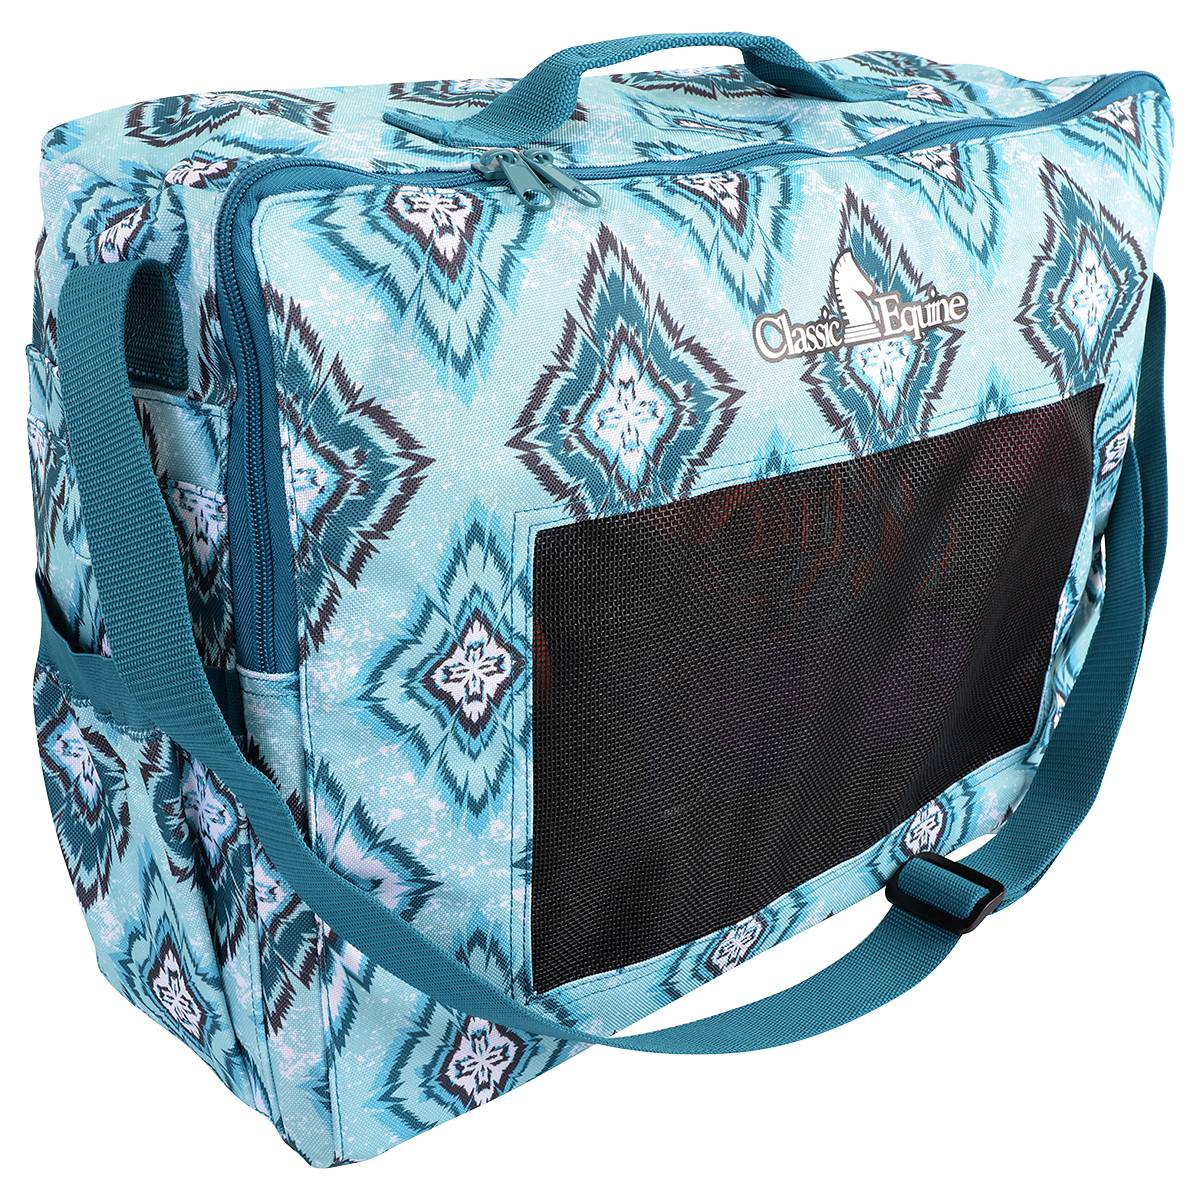 Classic Equine Boot Accessory Tote - Teal Diamond